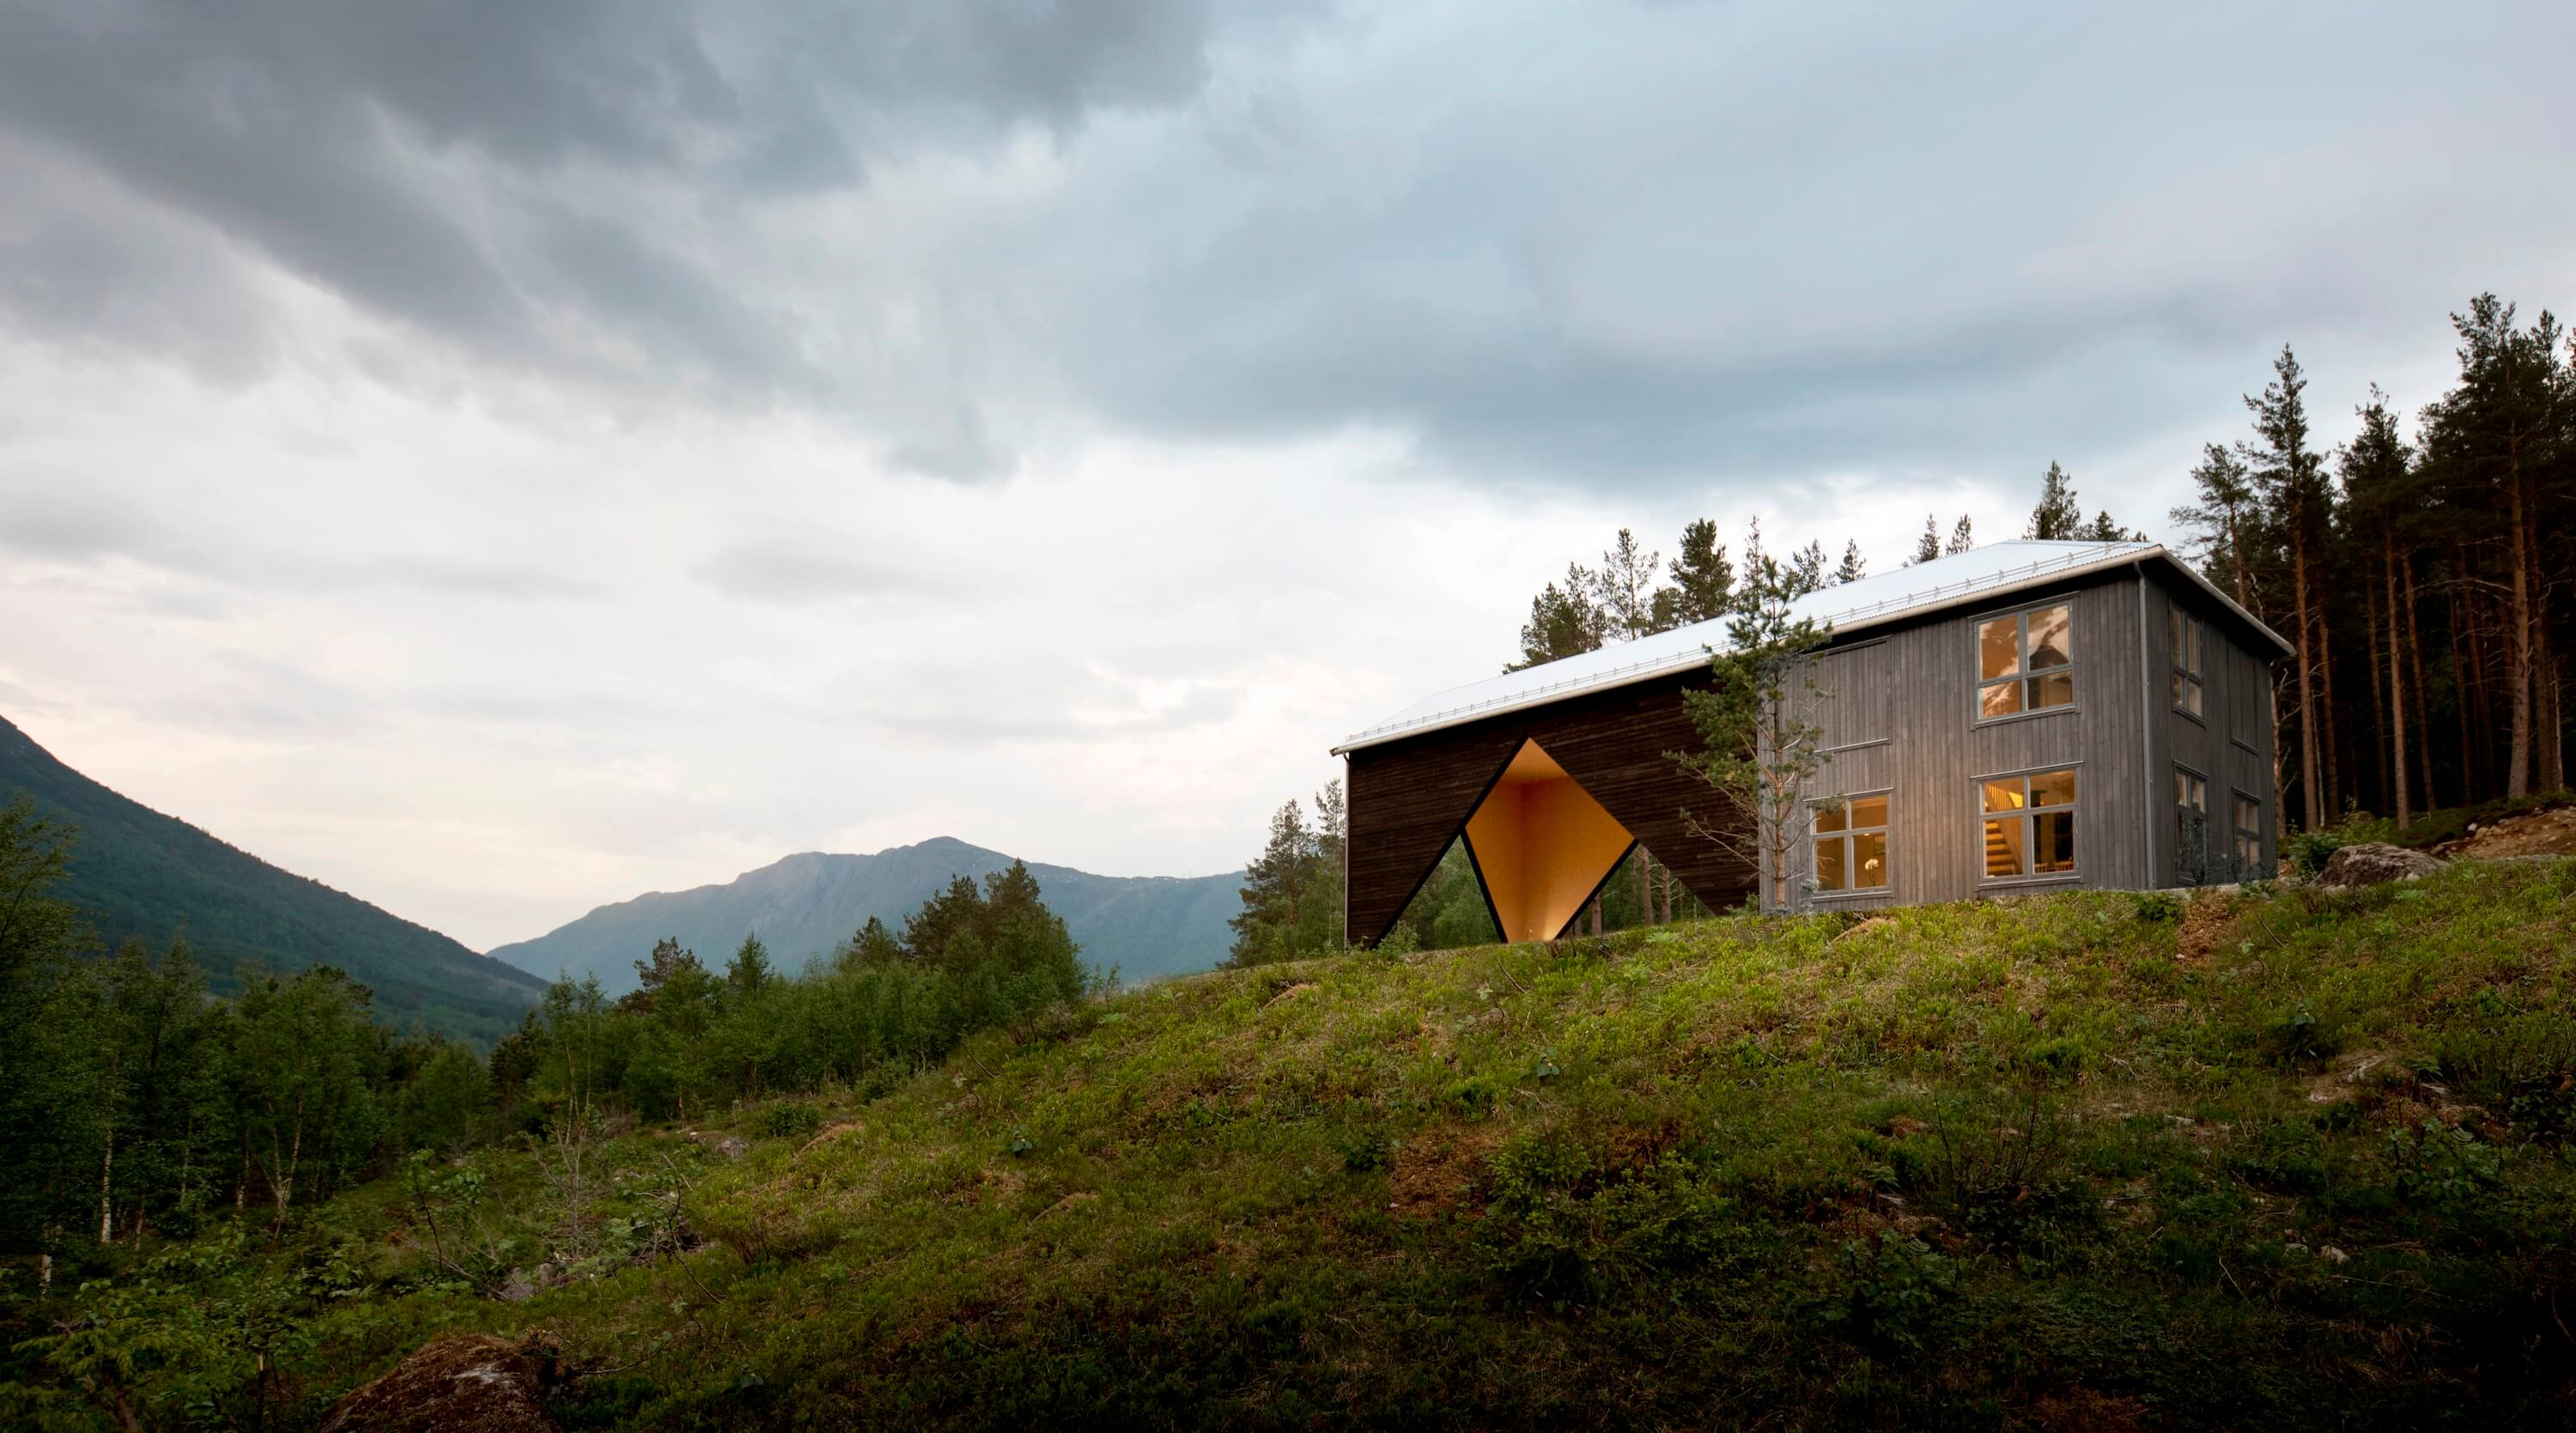 1/3 House by Rever and Drage Architects